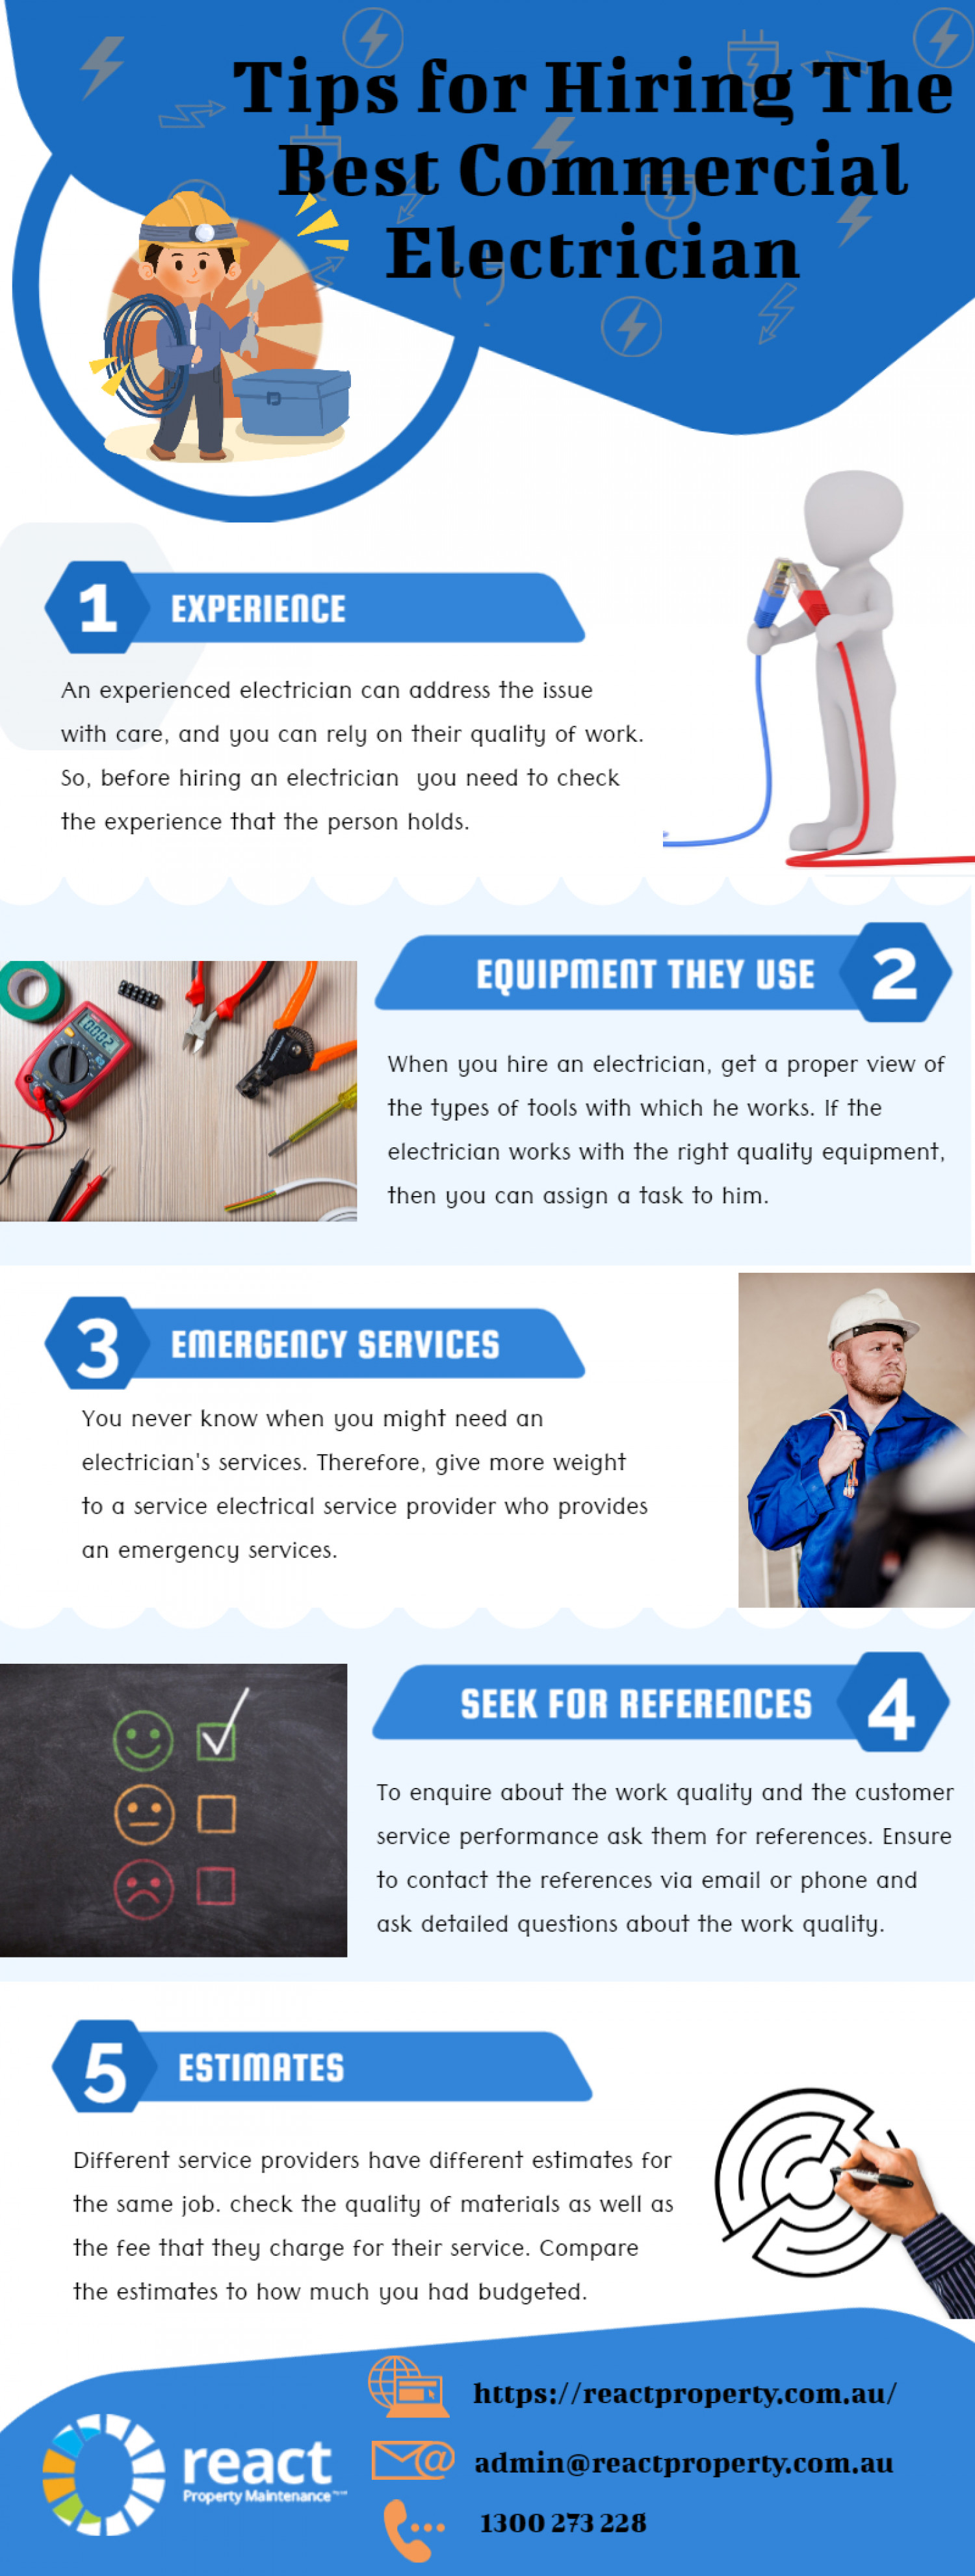 Tips for Hiring The Best Commercial Electrician Infographic